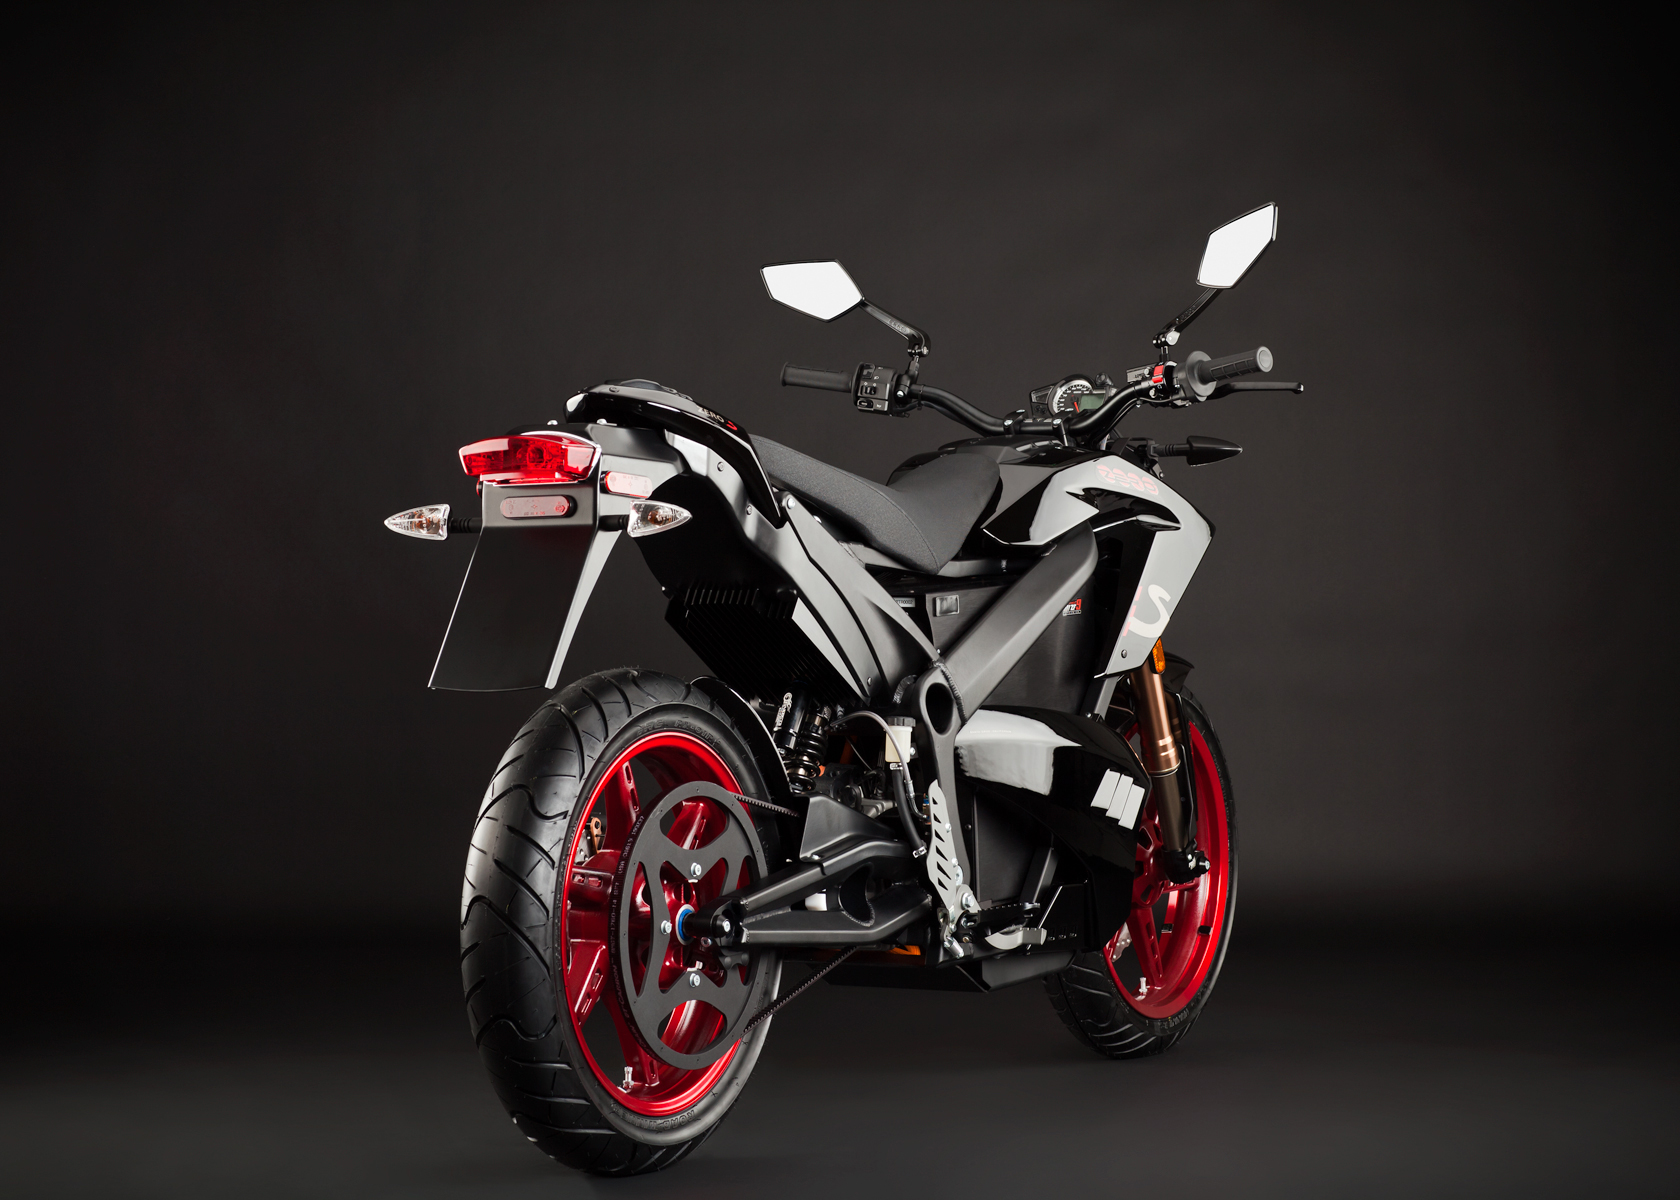 2012 Zero S Electric Motorcycle: Angle Right, Rear View